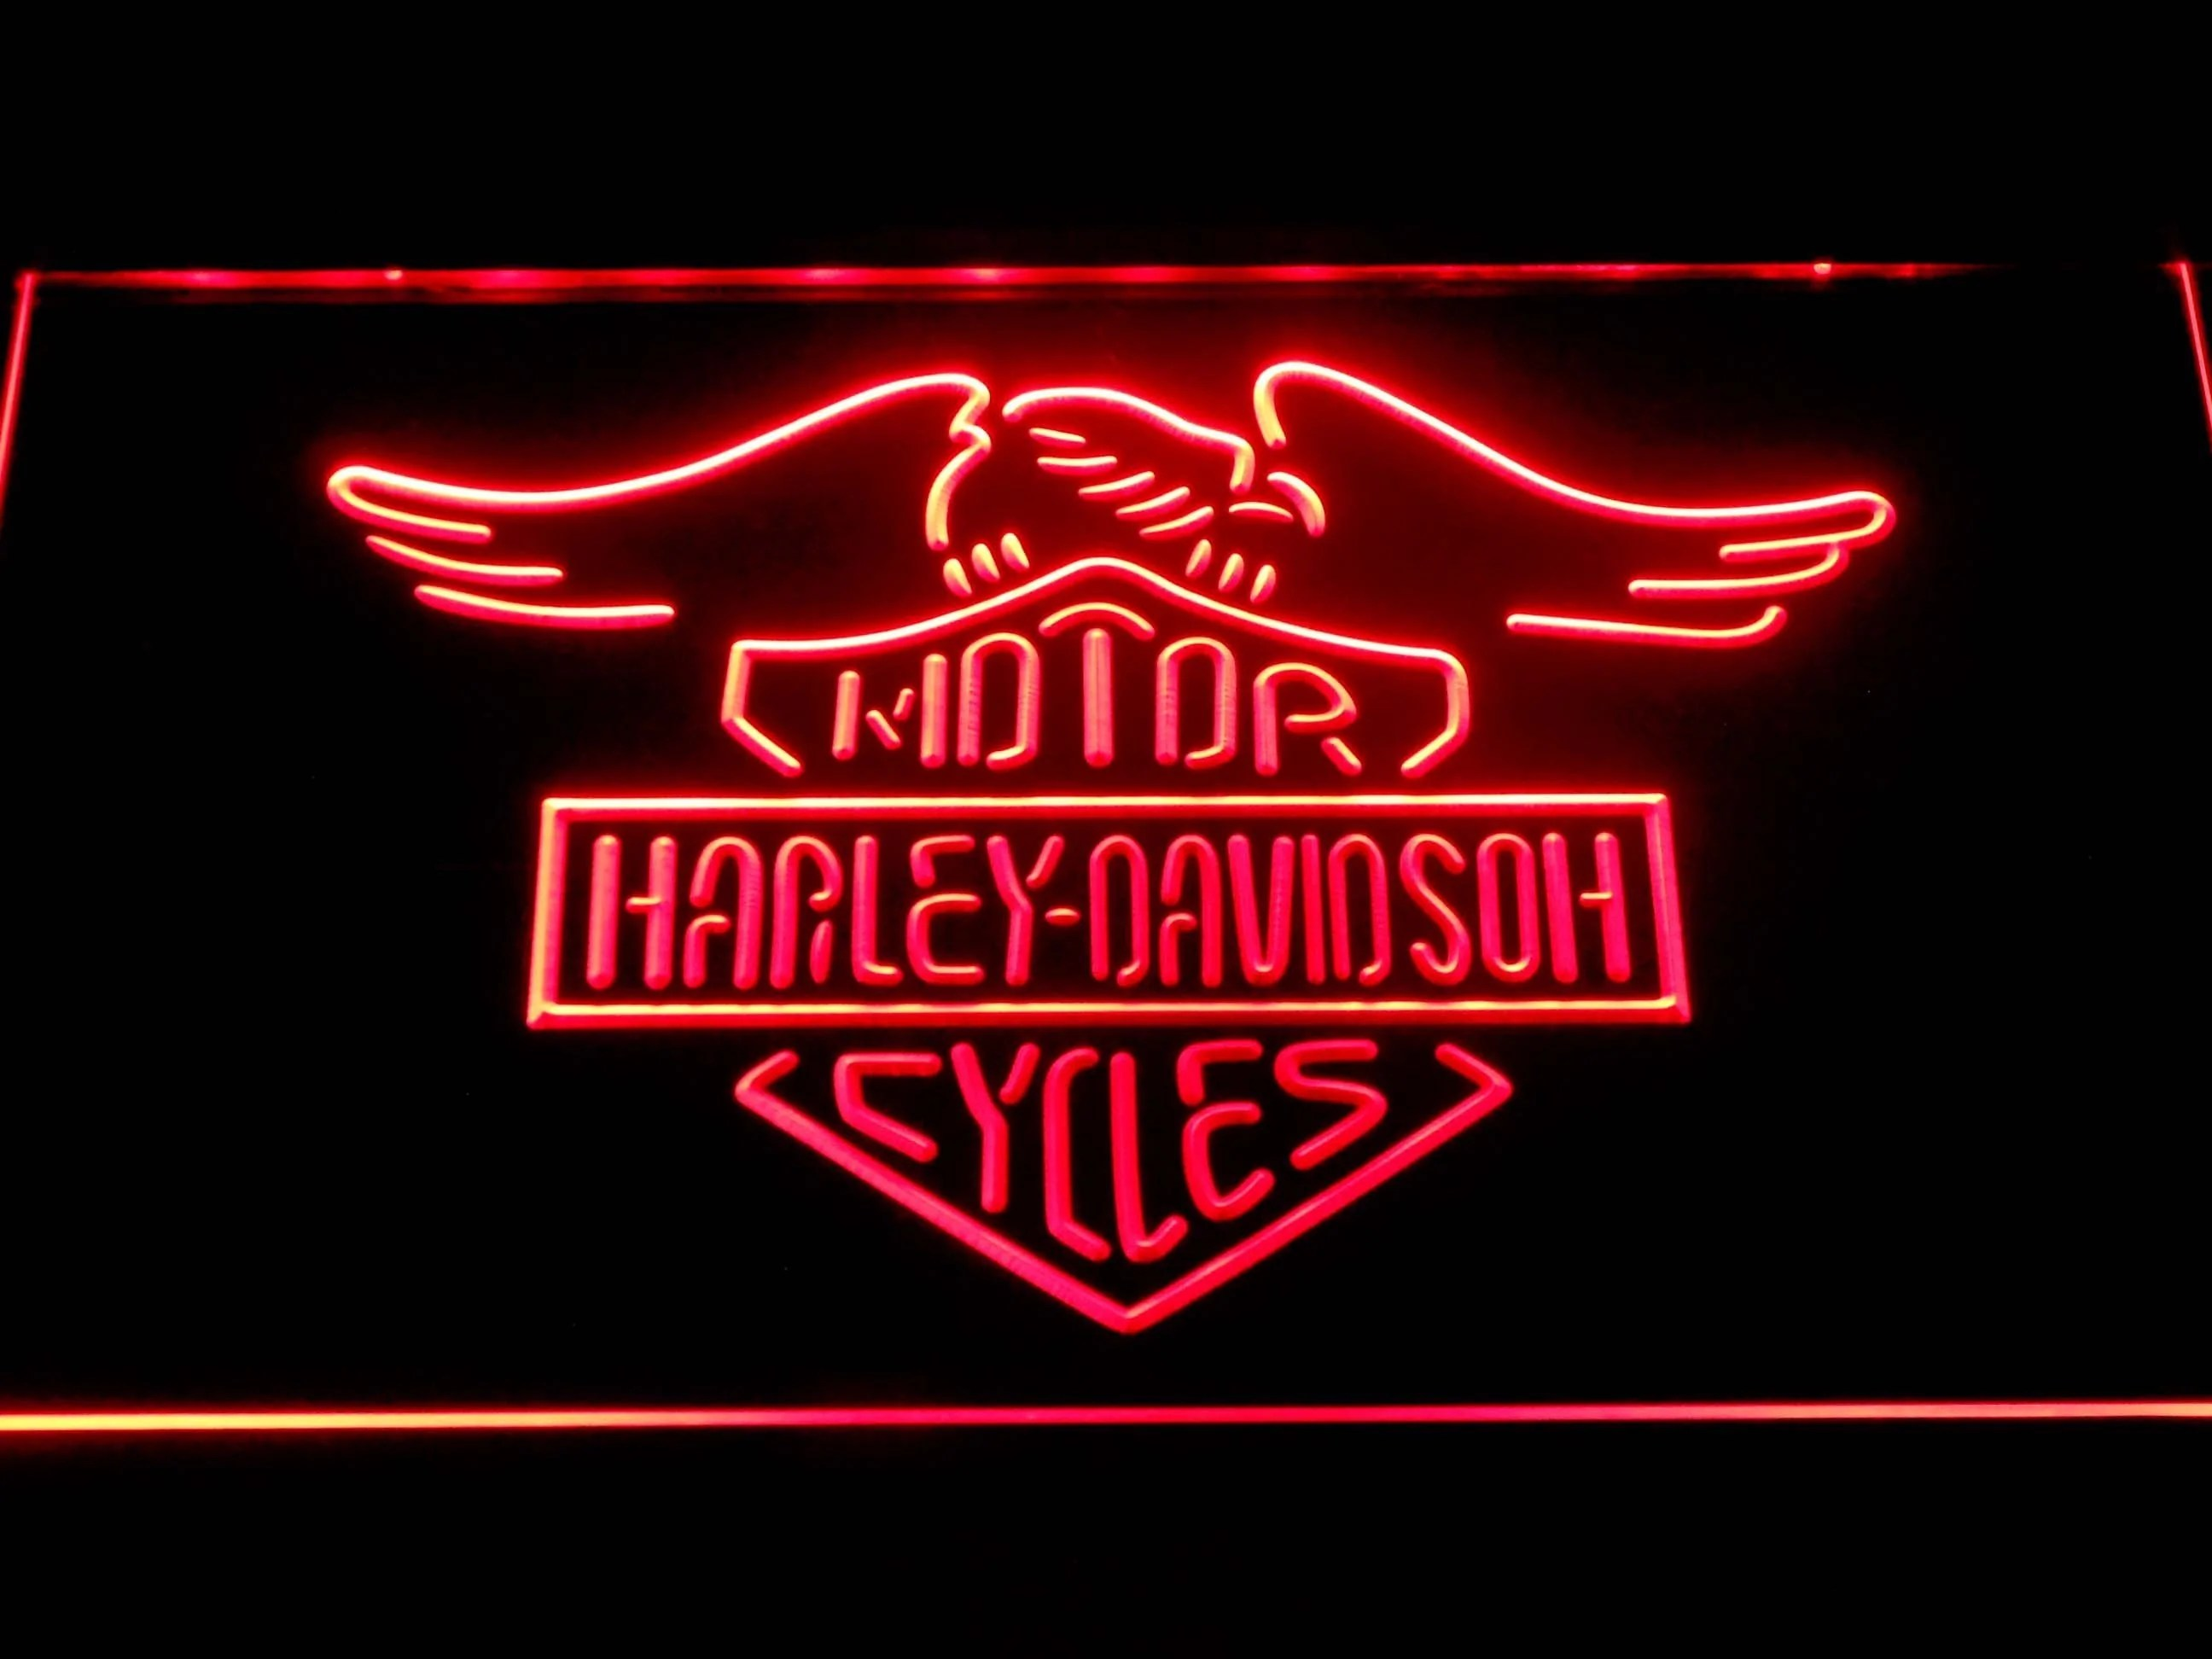 Harley Davidson Motorcycles Led Neon Sign Safespecial